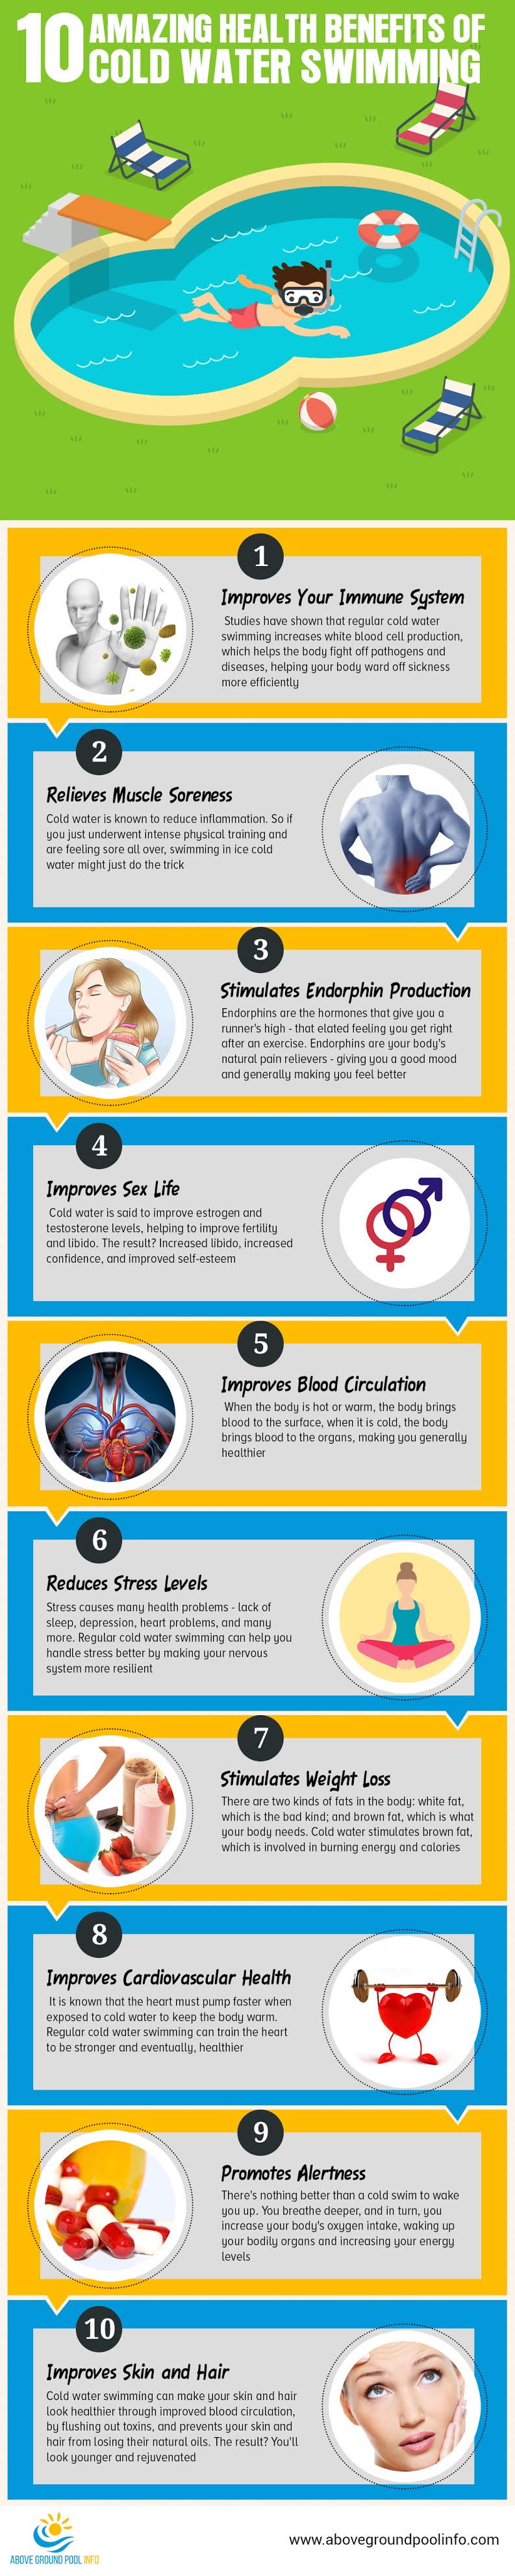 10 Amazing Health Benefits of Cold Water Swimming #infographic